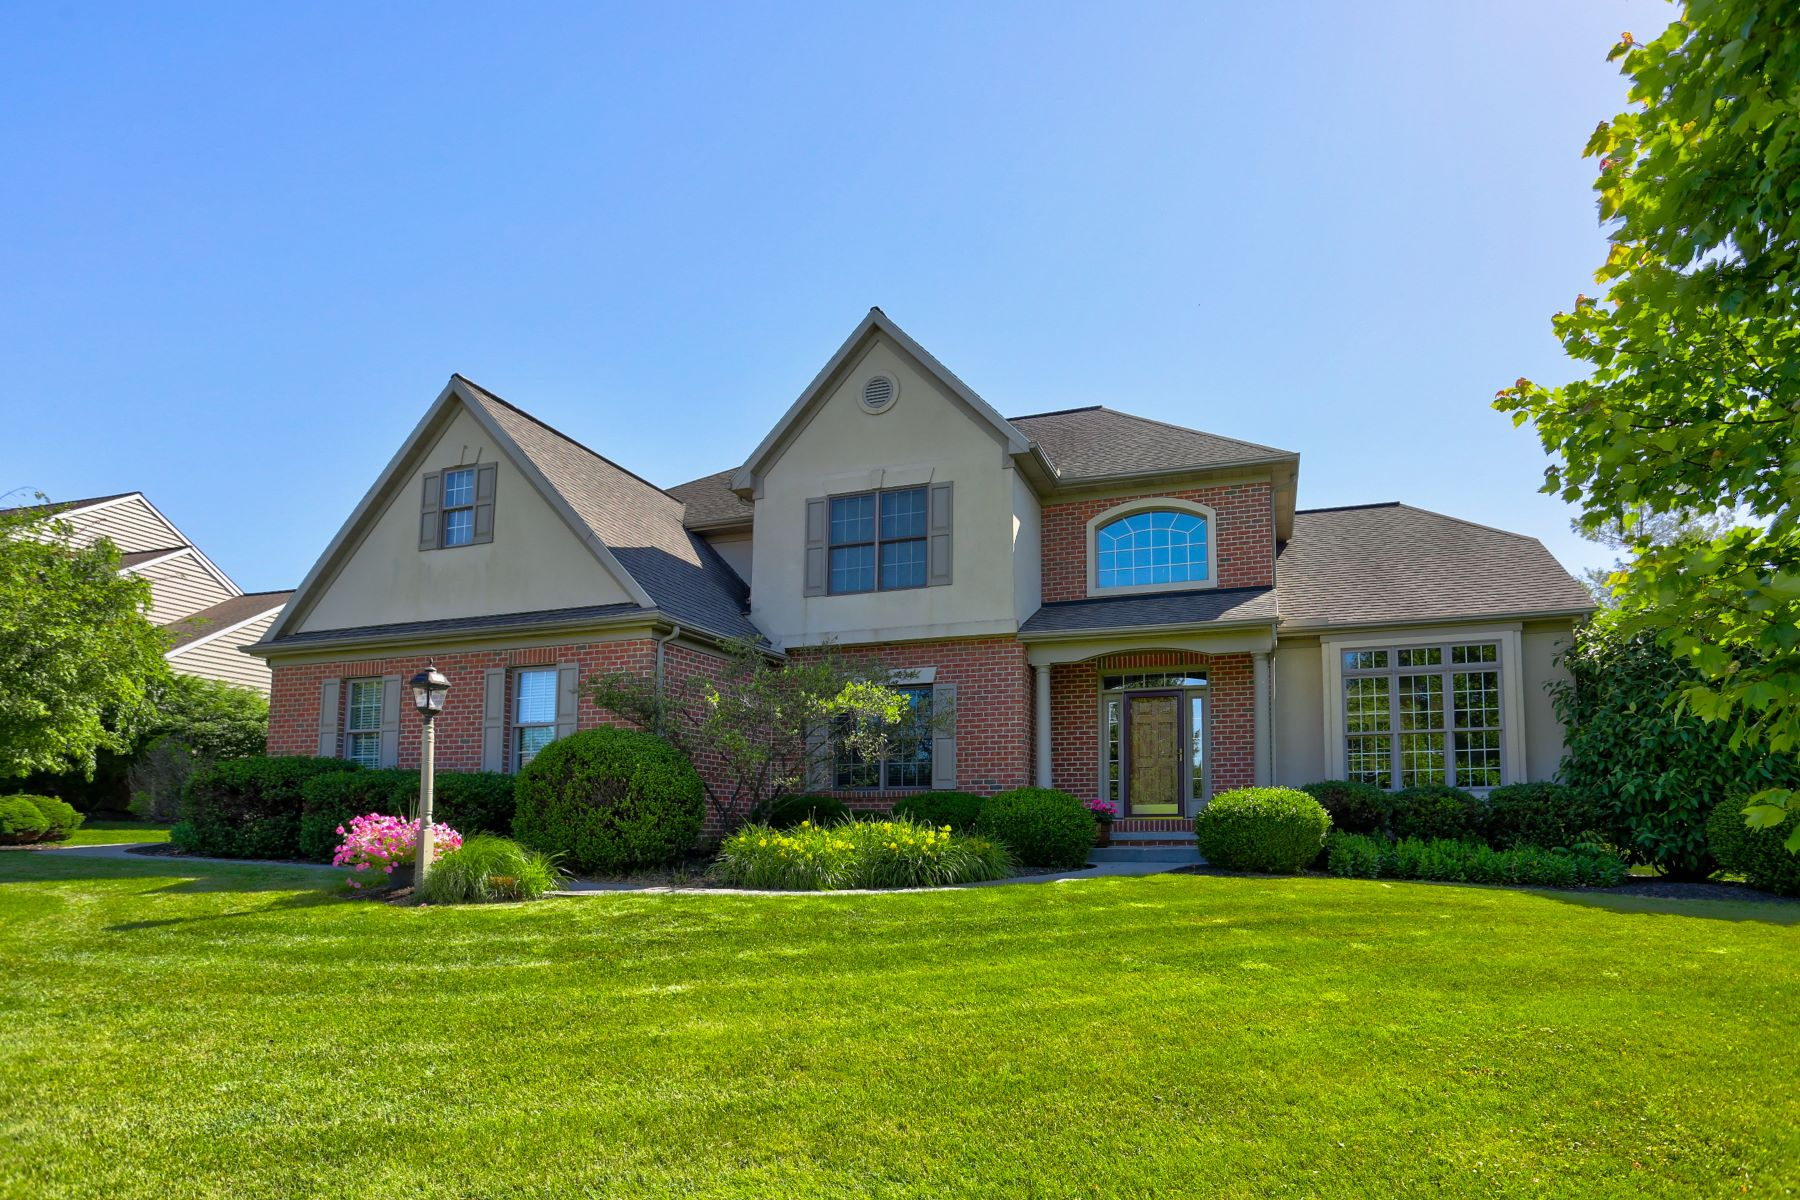 Single Family Home for Sale at 1951 Pickering Trail 1951 Pickering Trail Lancaster, Pennsylvania 17601 United States